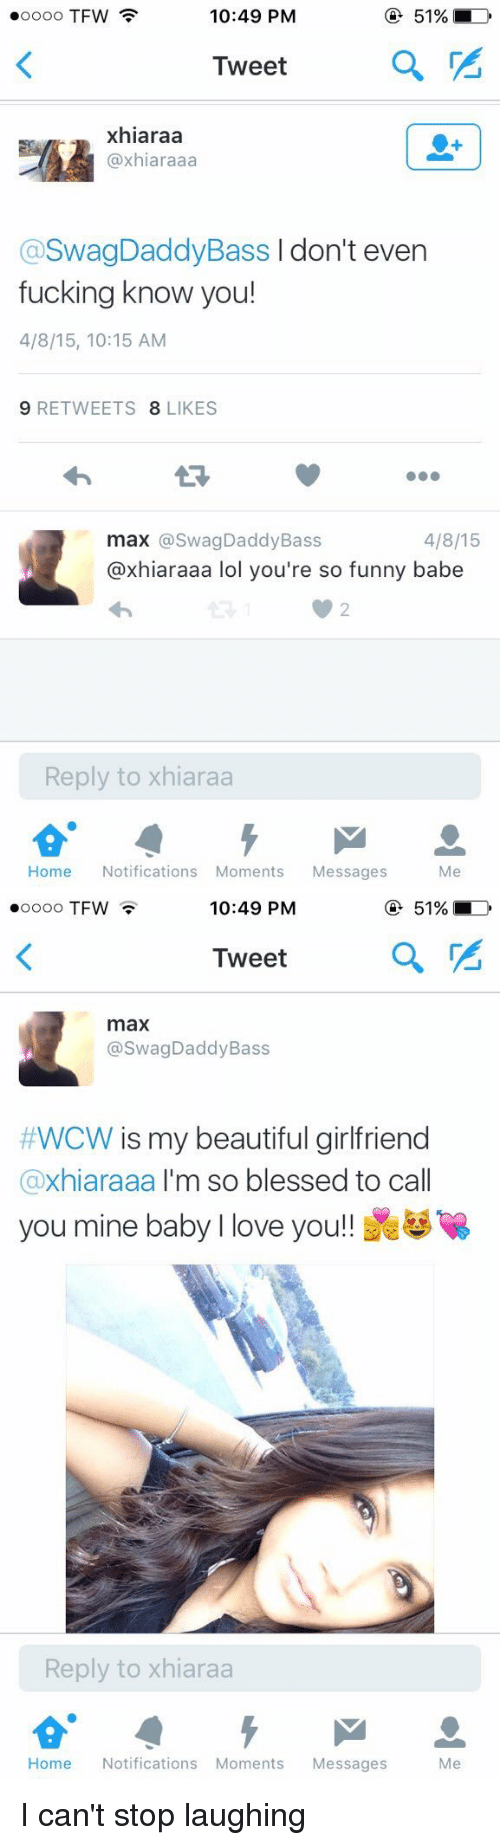 WCW: 10:49 PM  ooooo TFW  51%  Tweet  a  xhiaraa  (axhiaraaa  aswagDaddyBass don't even  fucking know you!  4/8/15, 10:15 AM  9 RETWEETS  8 LIKES  4/8/15  max @Swag Daddy Bass  @xhiaraaa lol you're so funny babe  Reply to xhiaraa  Home  Notifications Moments  Messages  Me   10:49 PM  51%  OOOOO TFW  Tweet  a  max  @Swag Daddy Bass  #WCW s my beautiful girlfriend  axhiaraaa I'm so blessed to ca  you mine baby l love you  Reply to xhiaraa  Home  Notifications Moments  Messages  Me I can't stop laughing